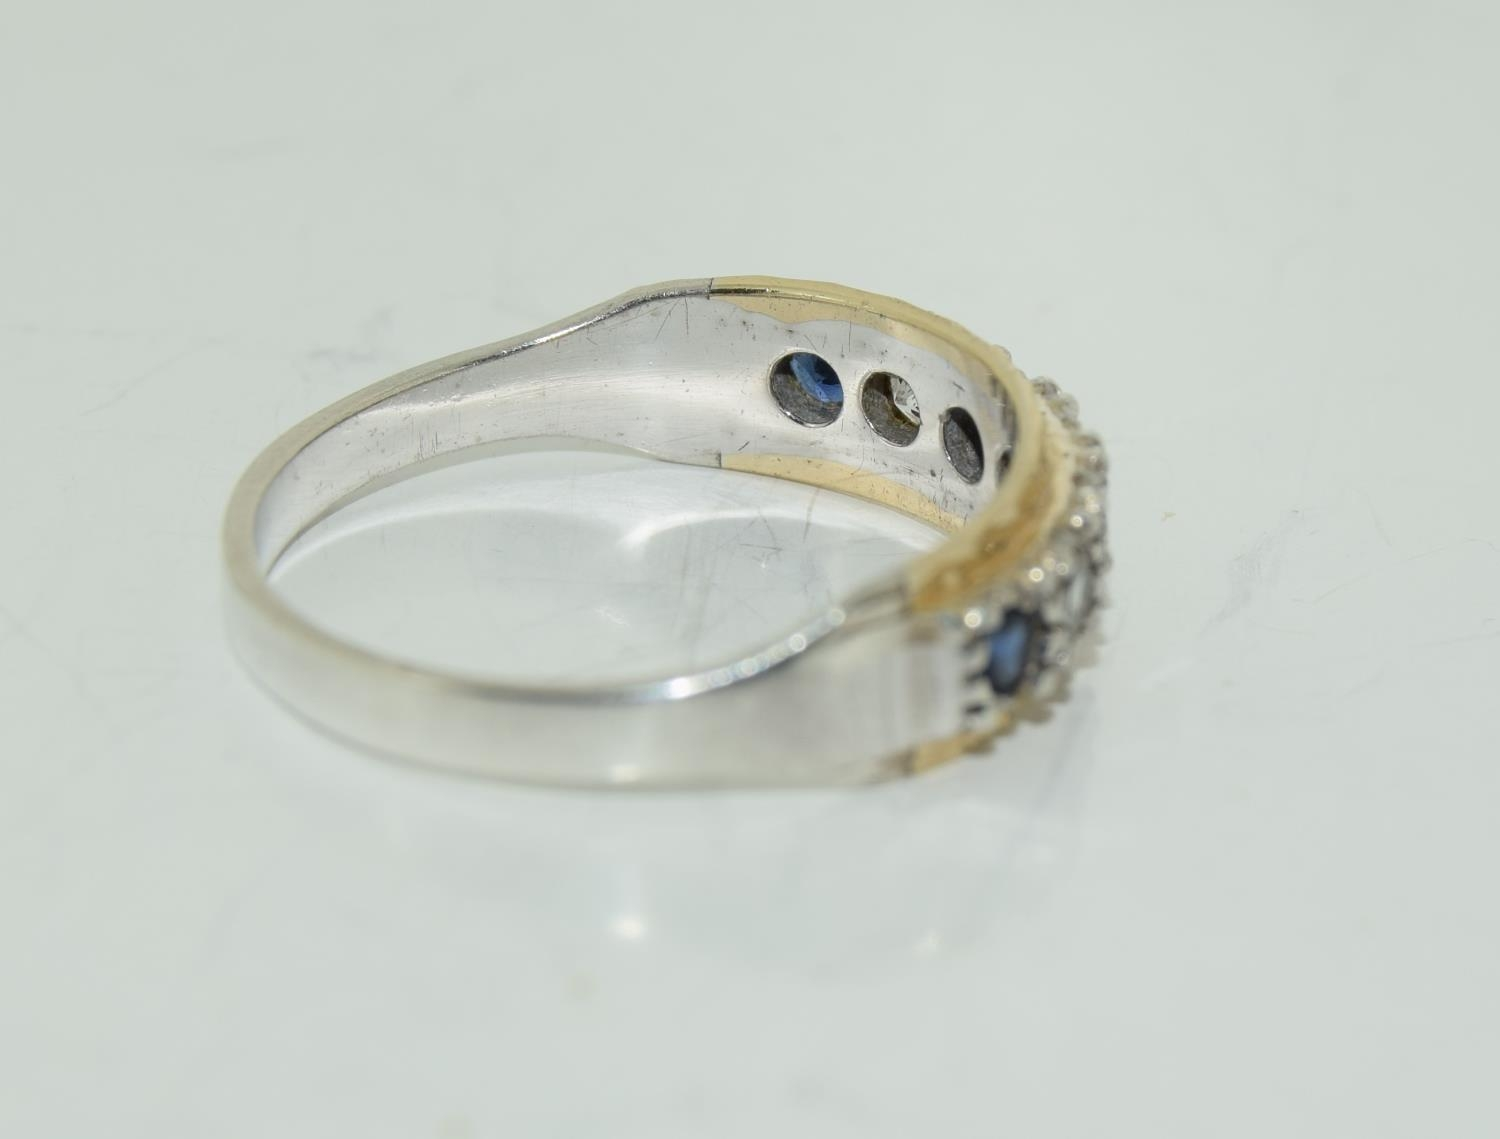 Antique Sapphire 9ct and silver eternity ring, Size M. - Image 2 of 3